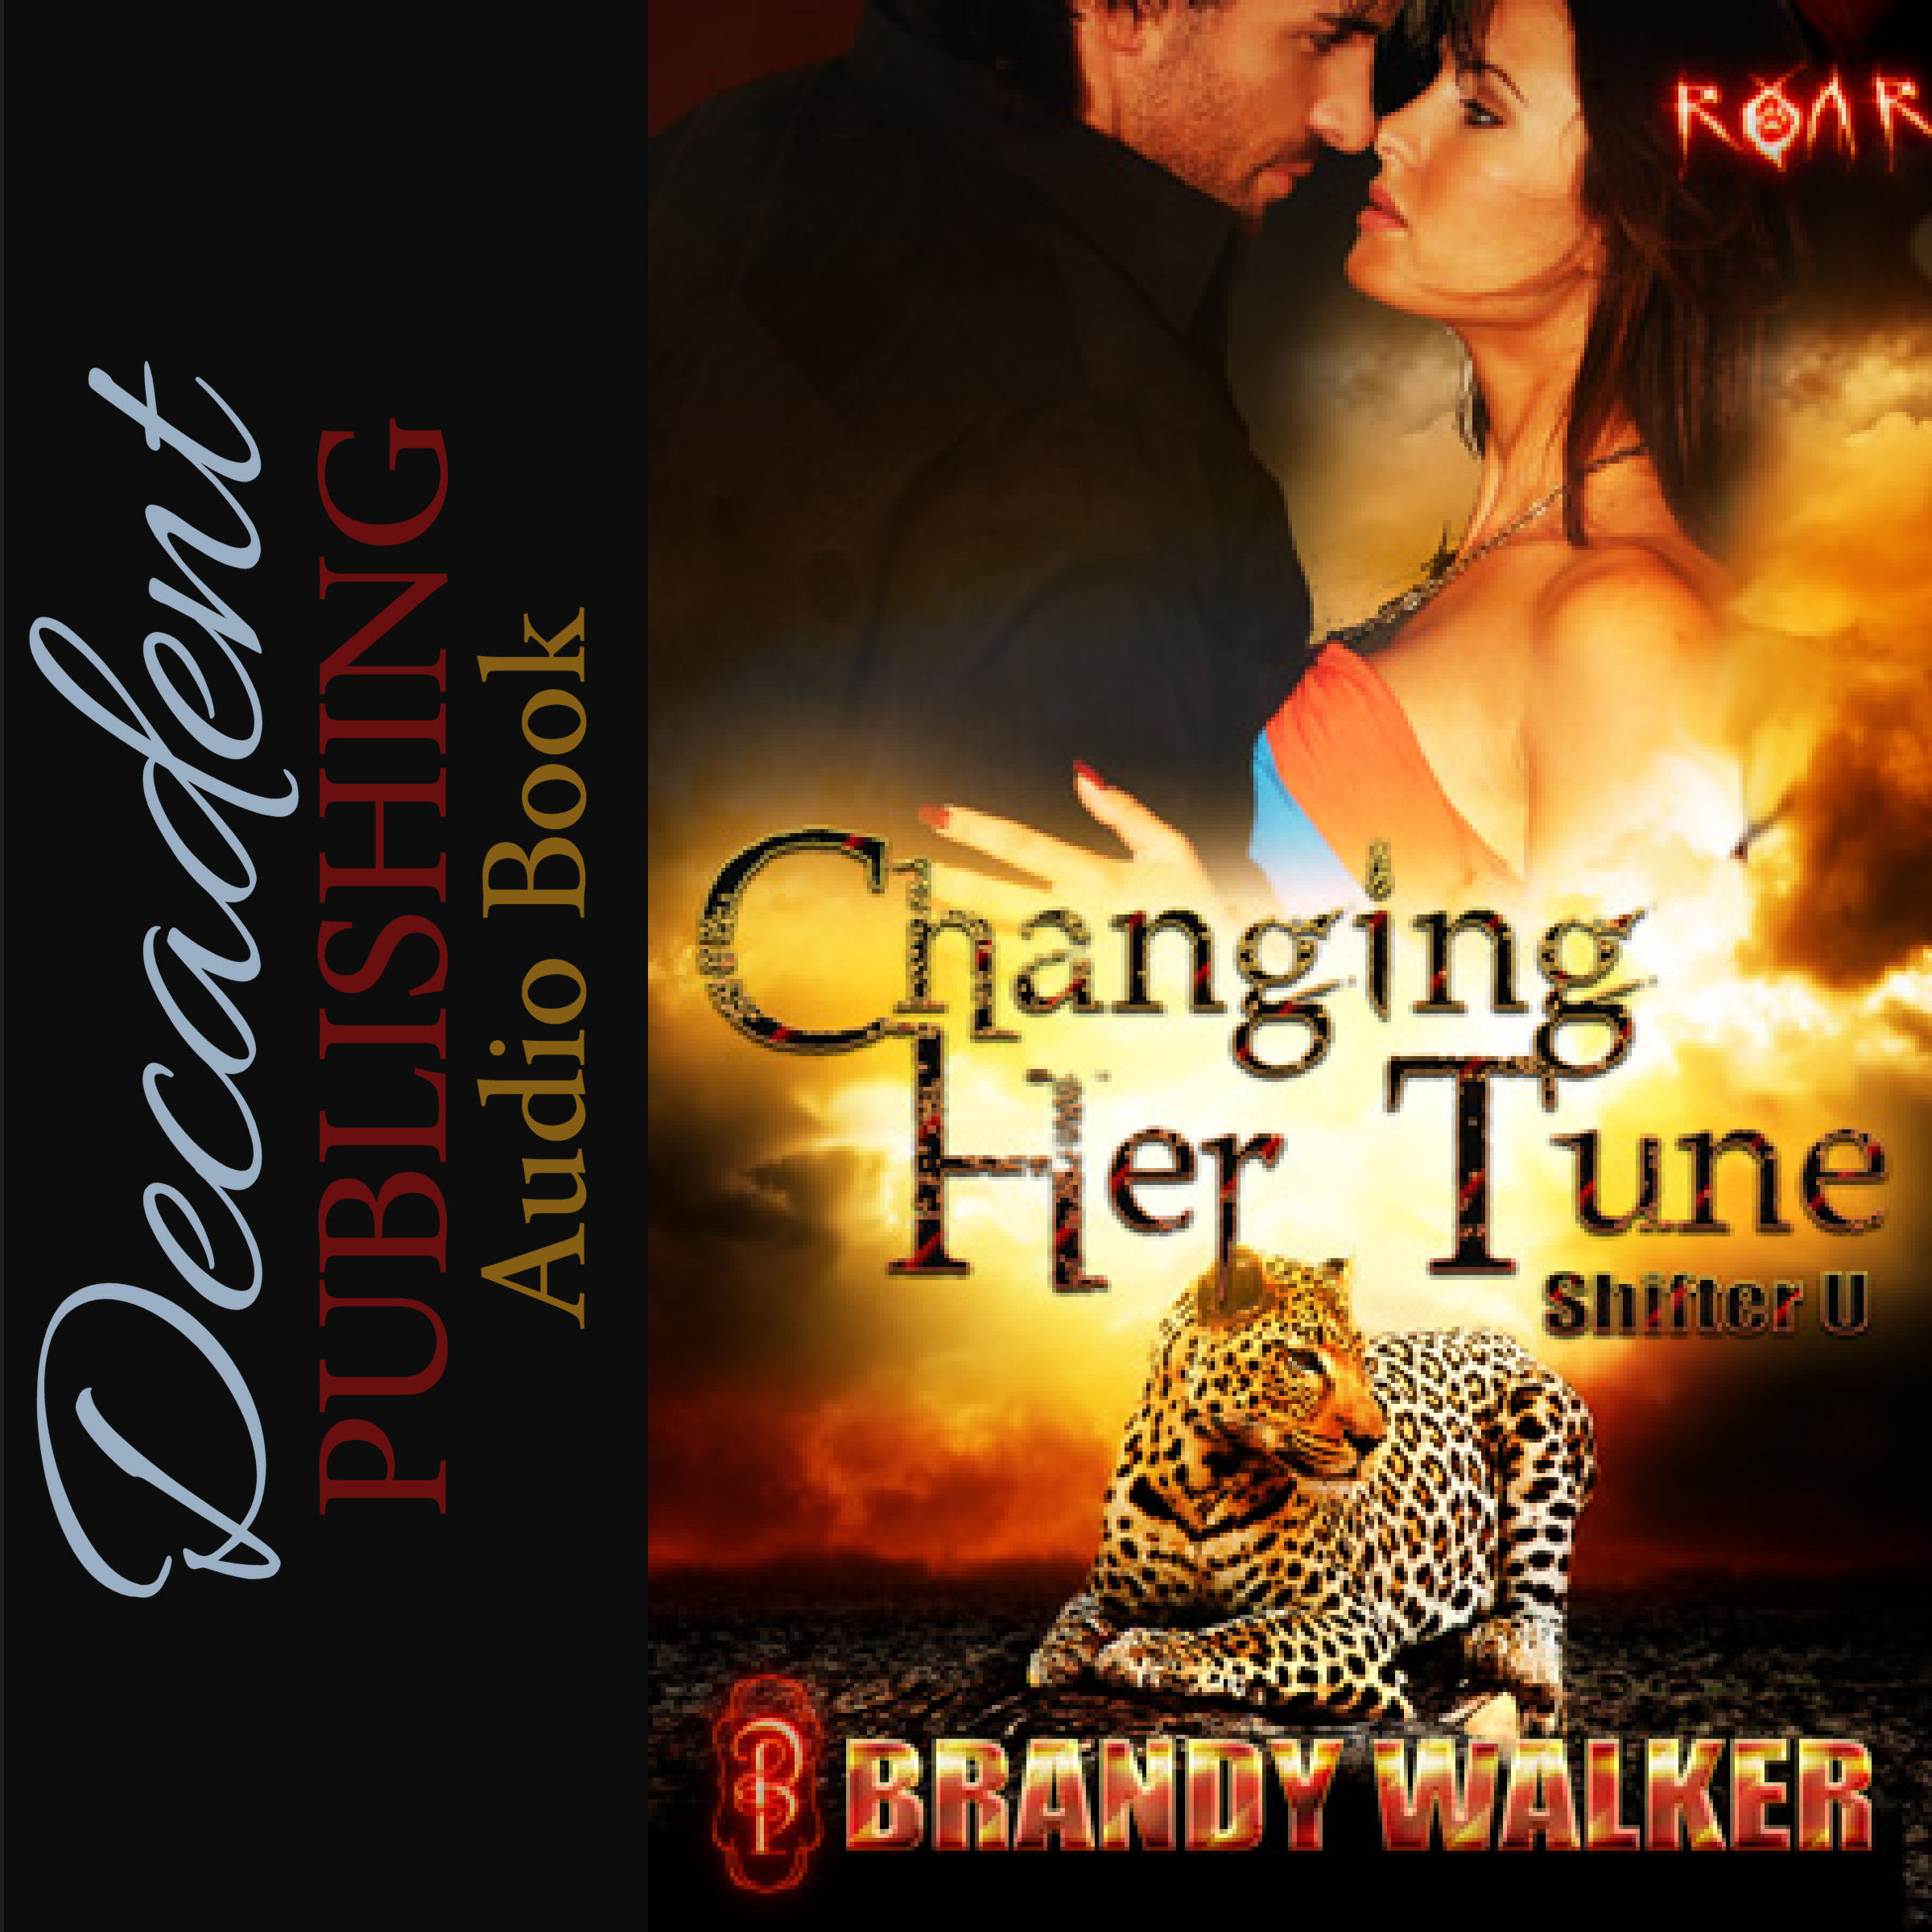 NEWEST AUDIO RELEASE